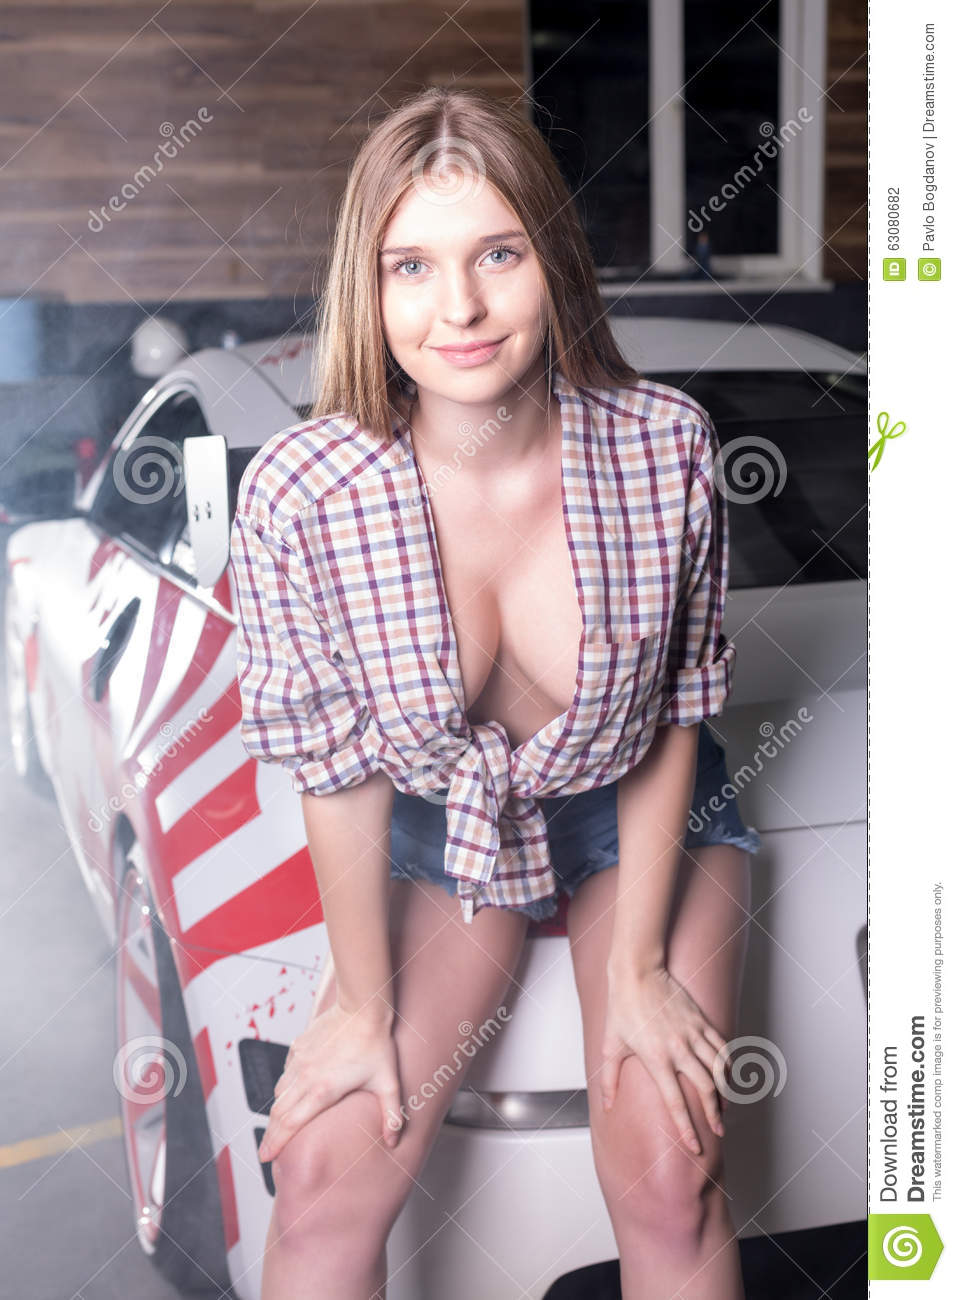 Hot Girl With Sport Car Stock Photo Image Of Attractive